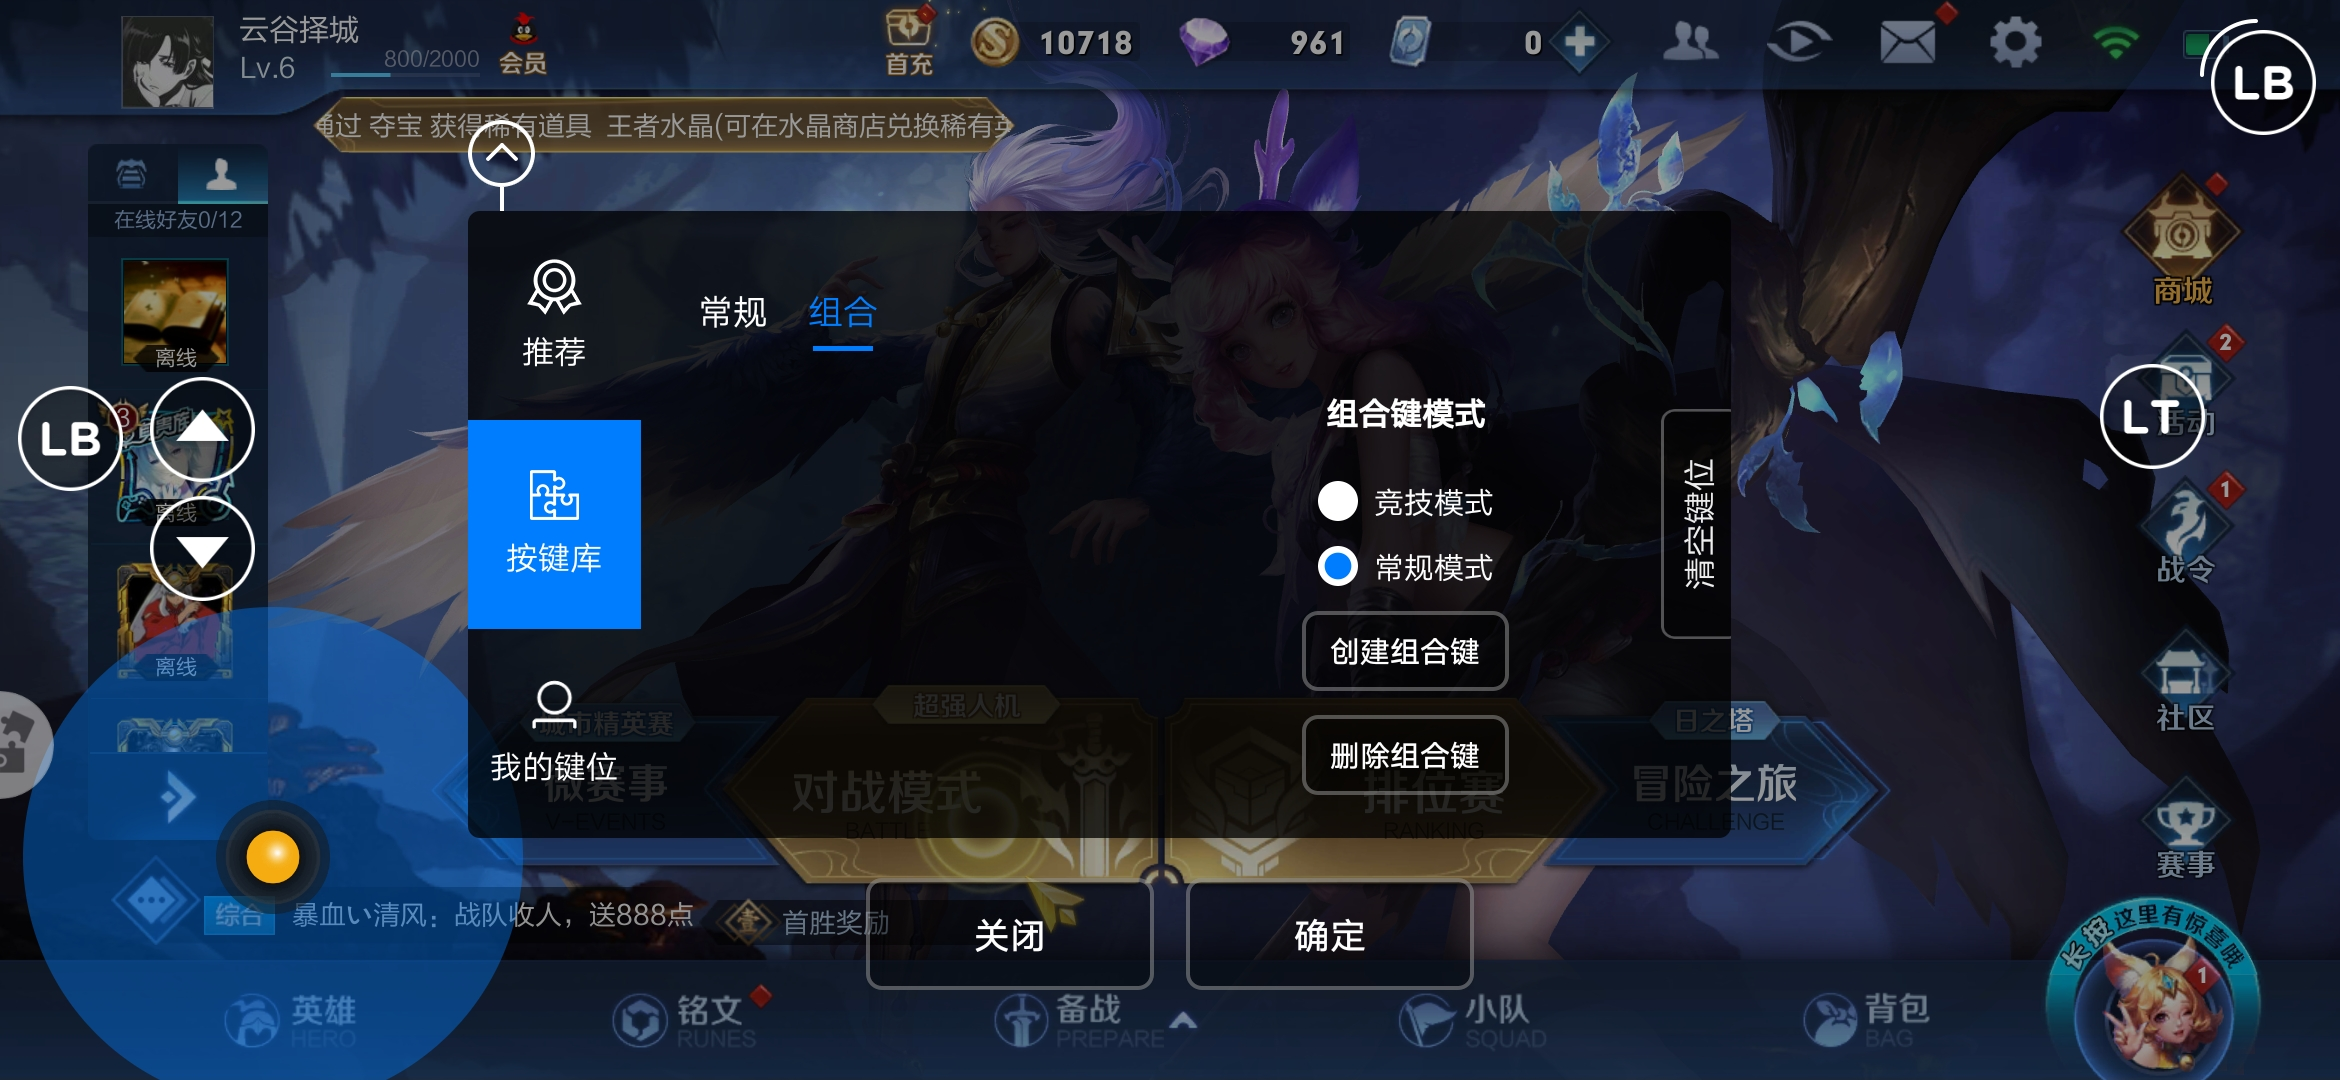 Screenshot_20190403_141109_com.tencent.tmgp.sgame.jpg